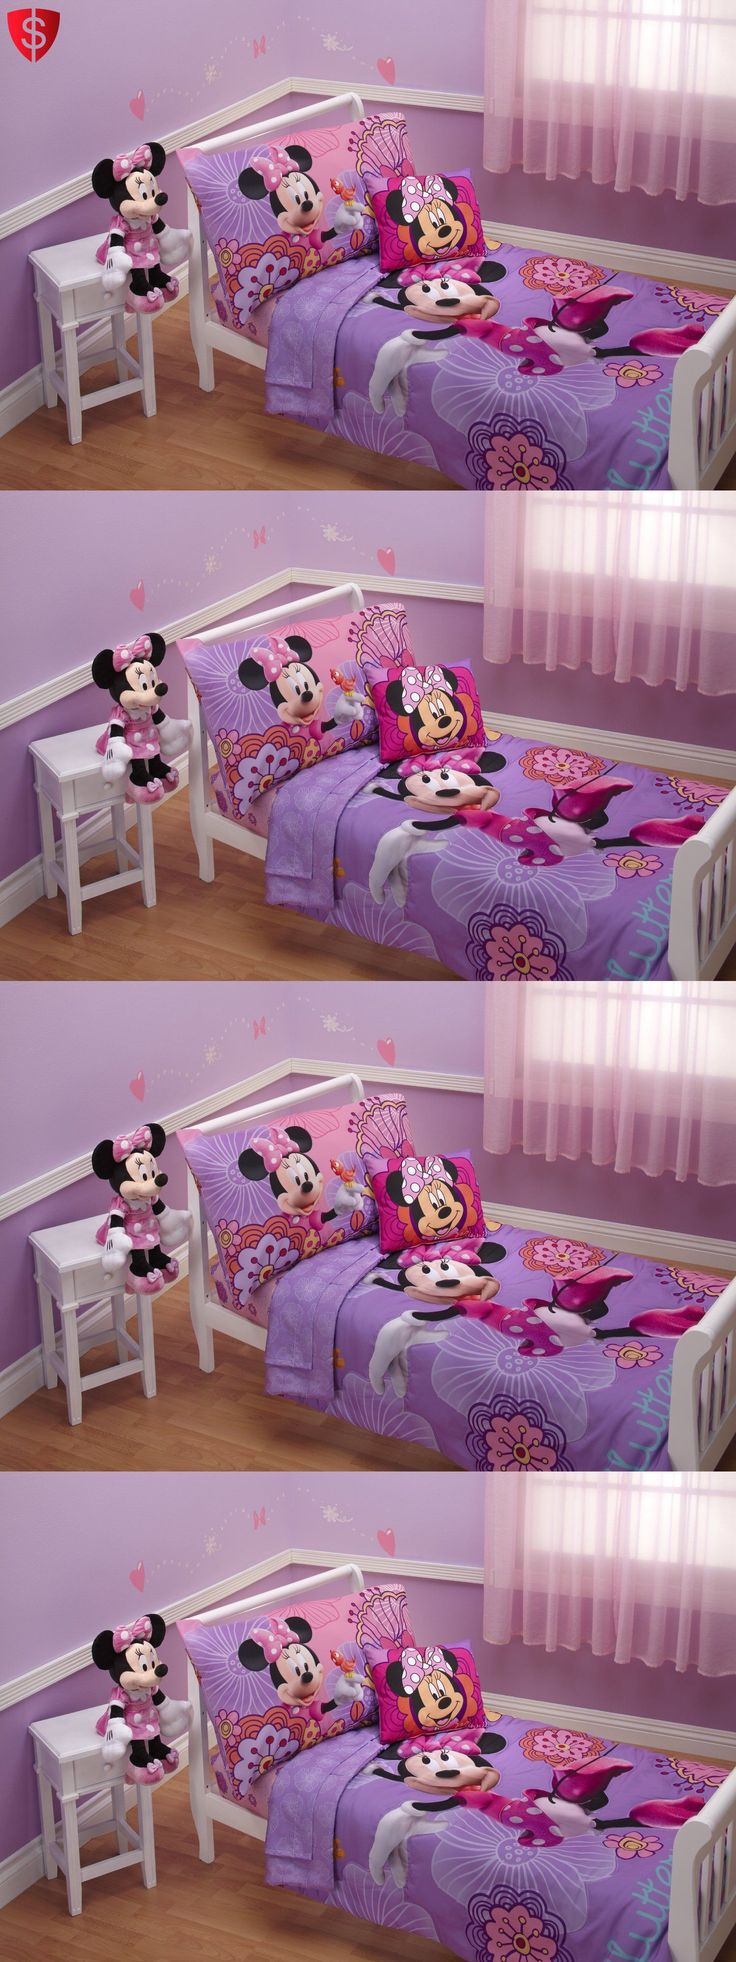 Winnie the pooh toddler bedding - Bedding Sets 66731 4 Piece Minnie Mouse Disney Bedding Set Girls Toddler Comforter Sheets Bed